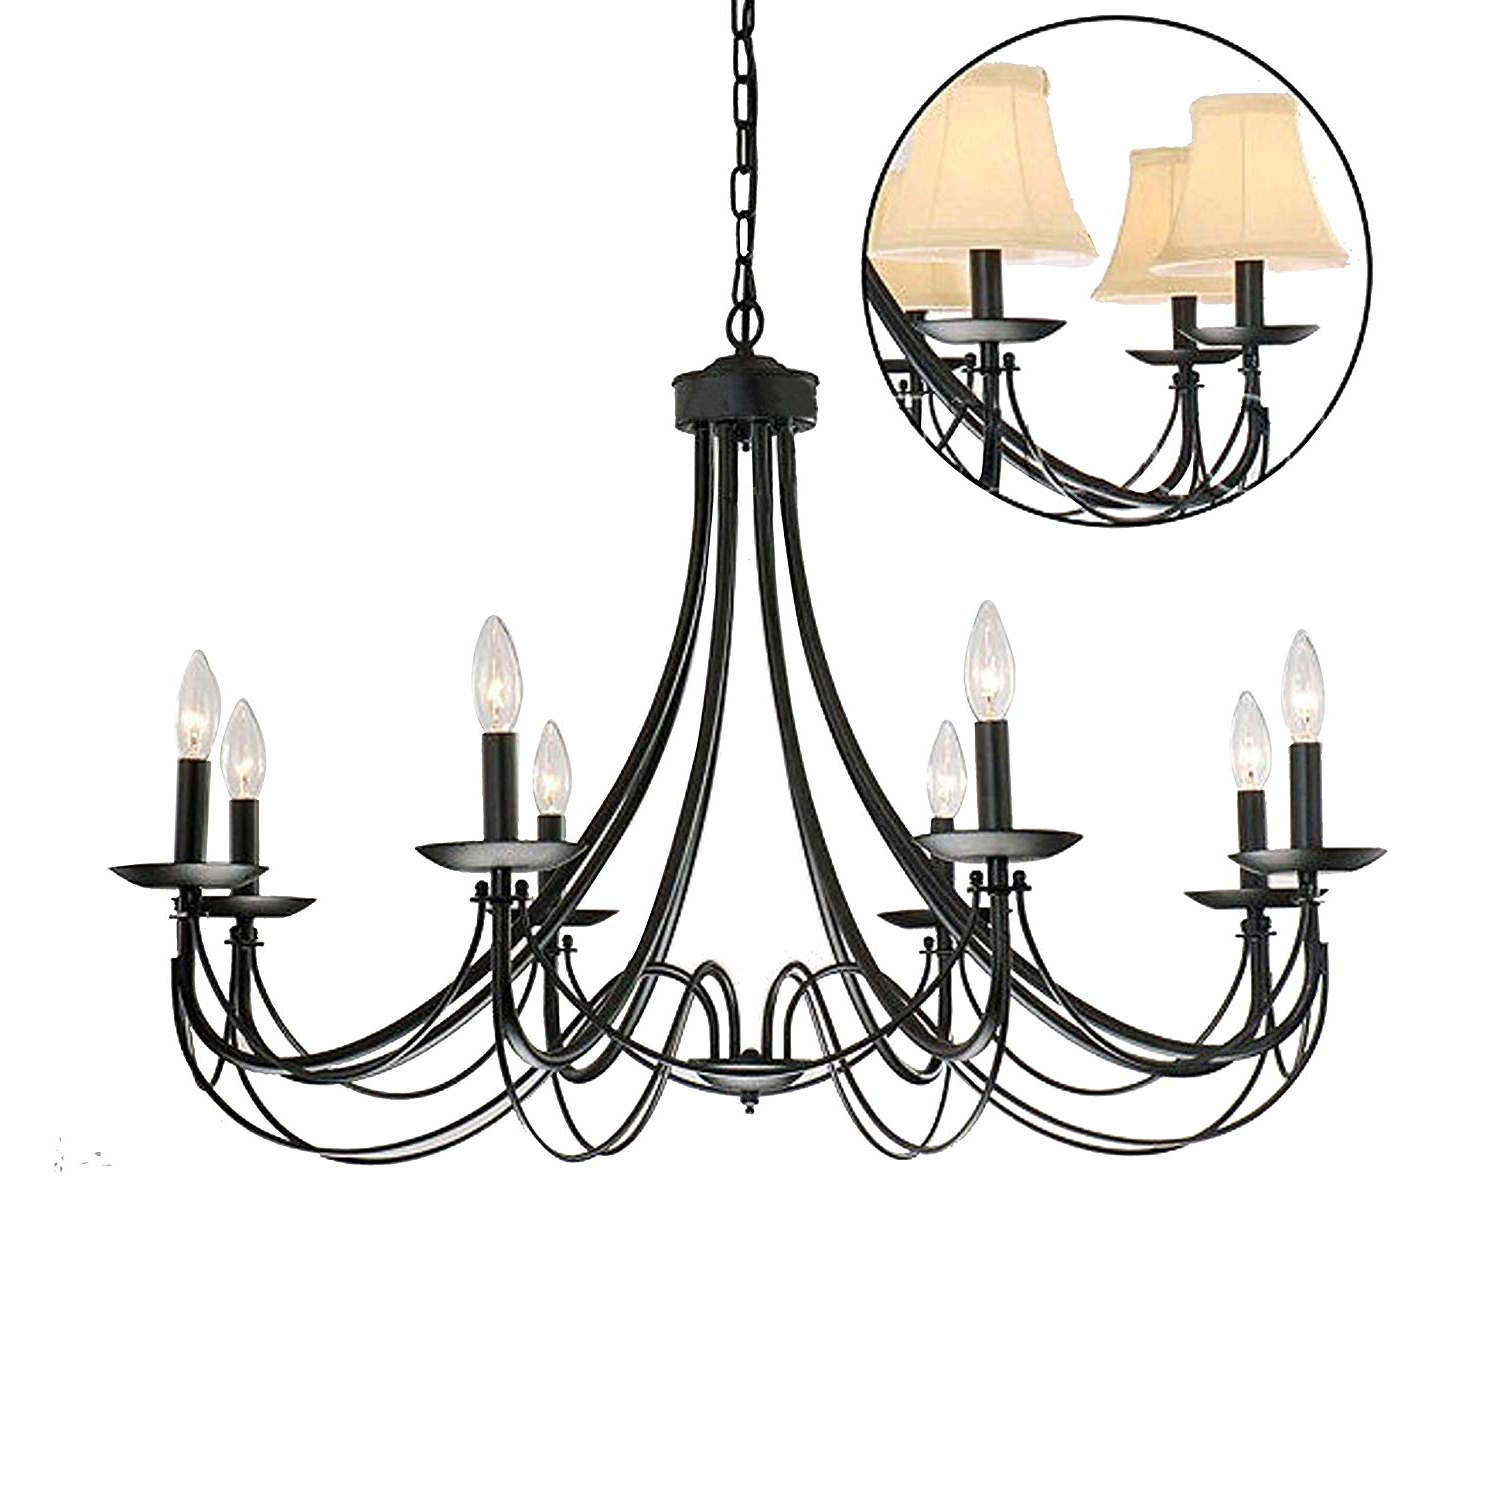 Widely Used Shaylee 6 Light Candle Style Chandeliers Regarding Iron 8 Light Black Chandelier (View 21 of 25)